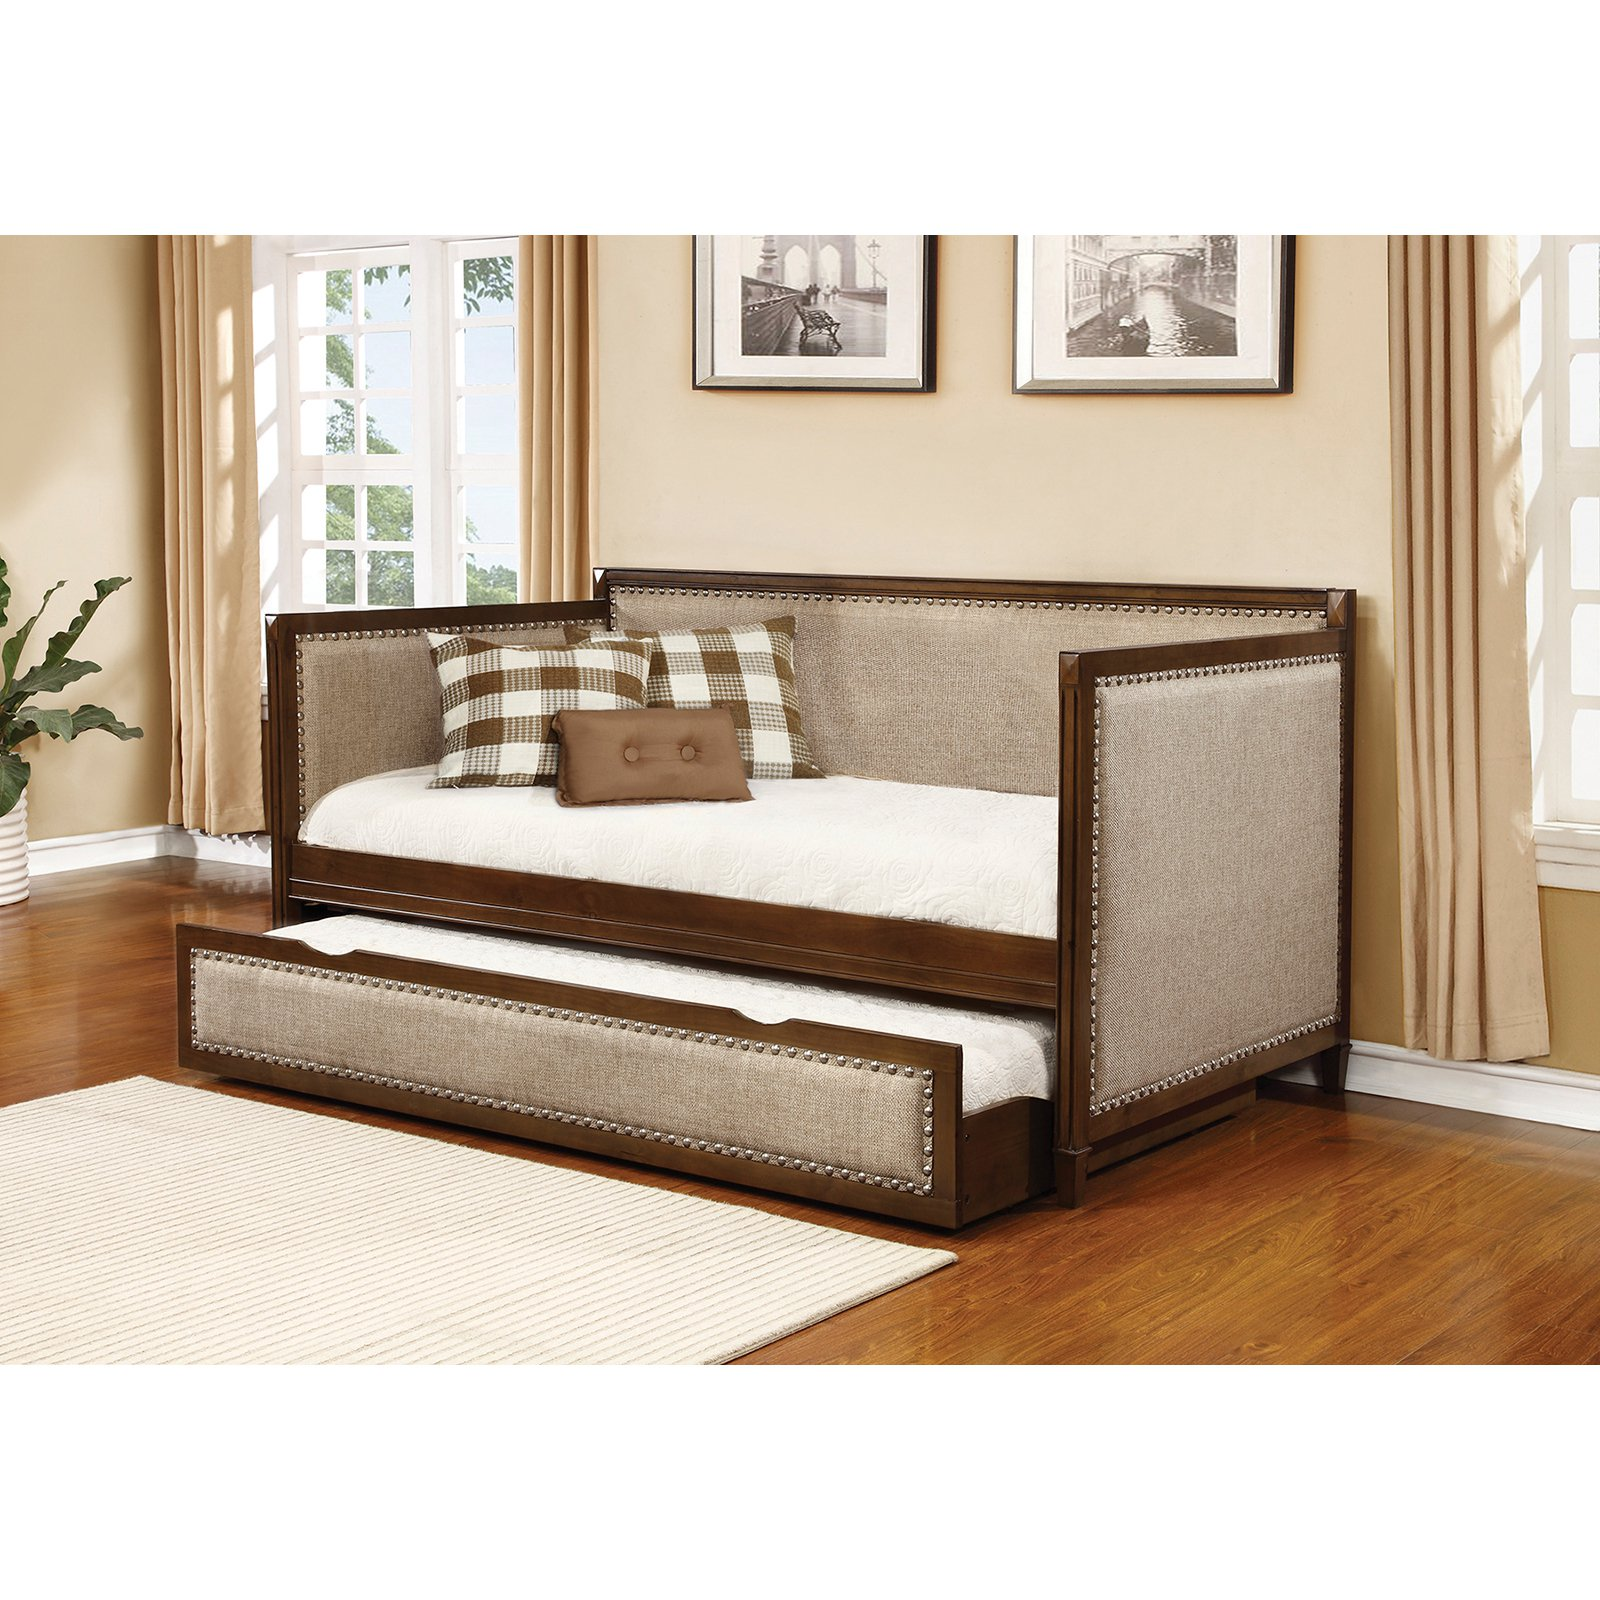 Coaster Furniture Carriere Upholstered Daybed with Trundle